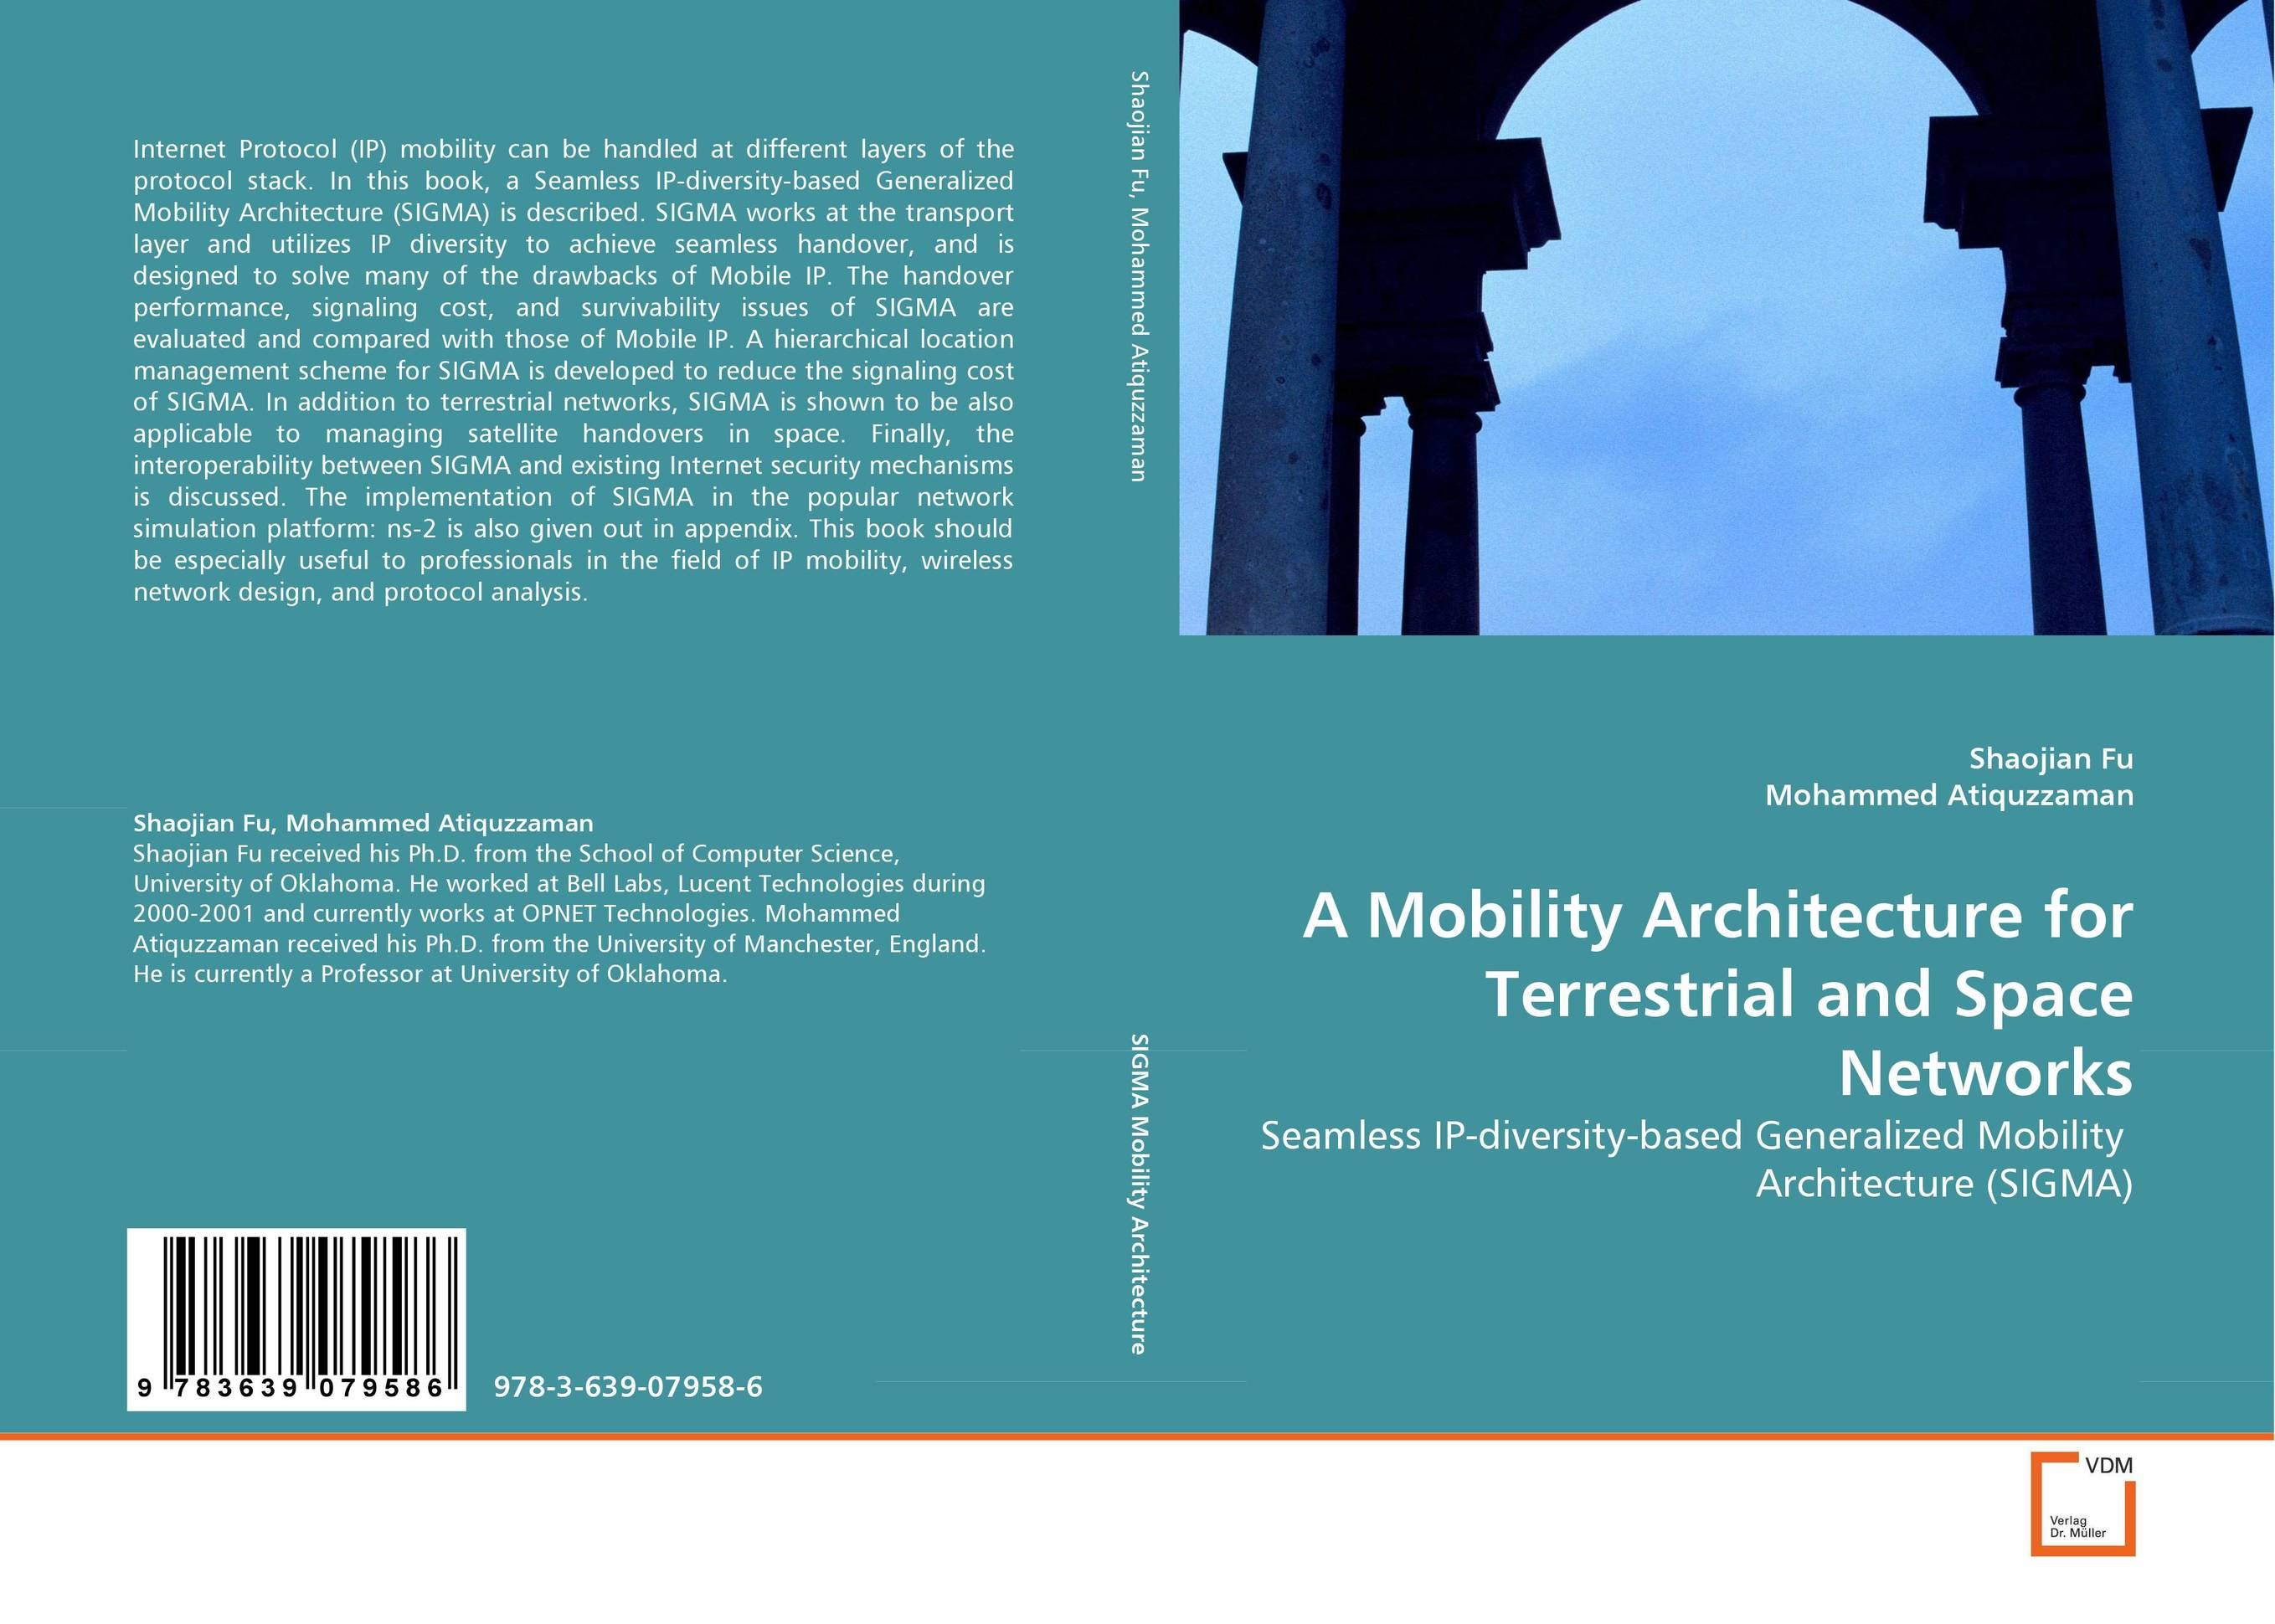 A Mobility Architecture for Terrestrial and Space Networks mobility at the first and last mile of the ipt in a european megacity